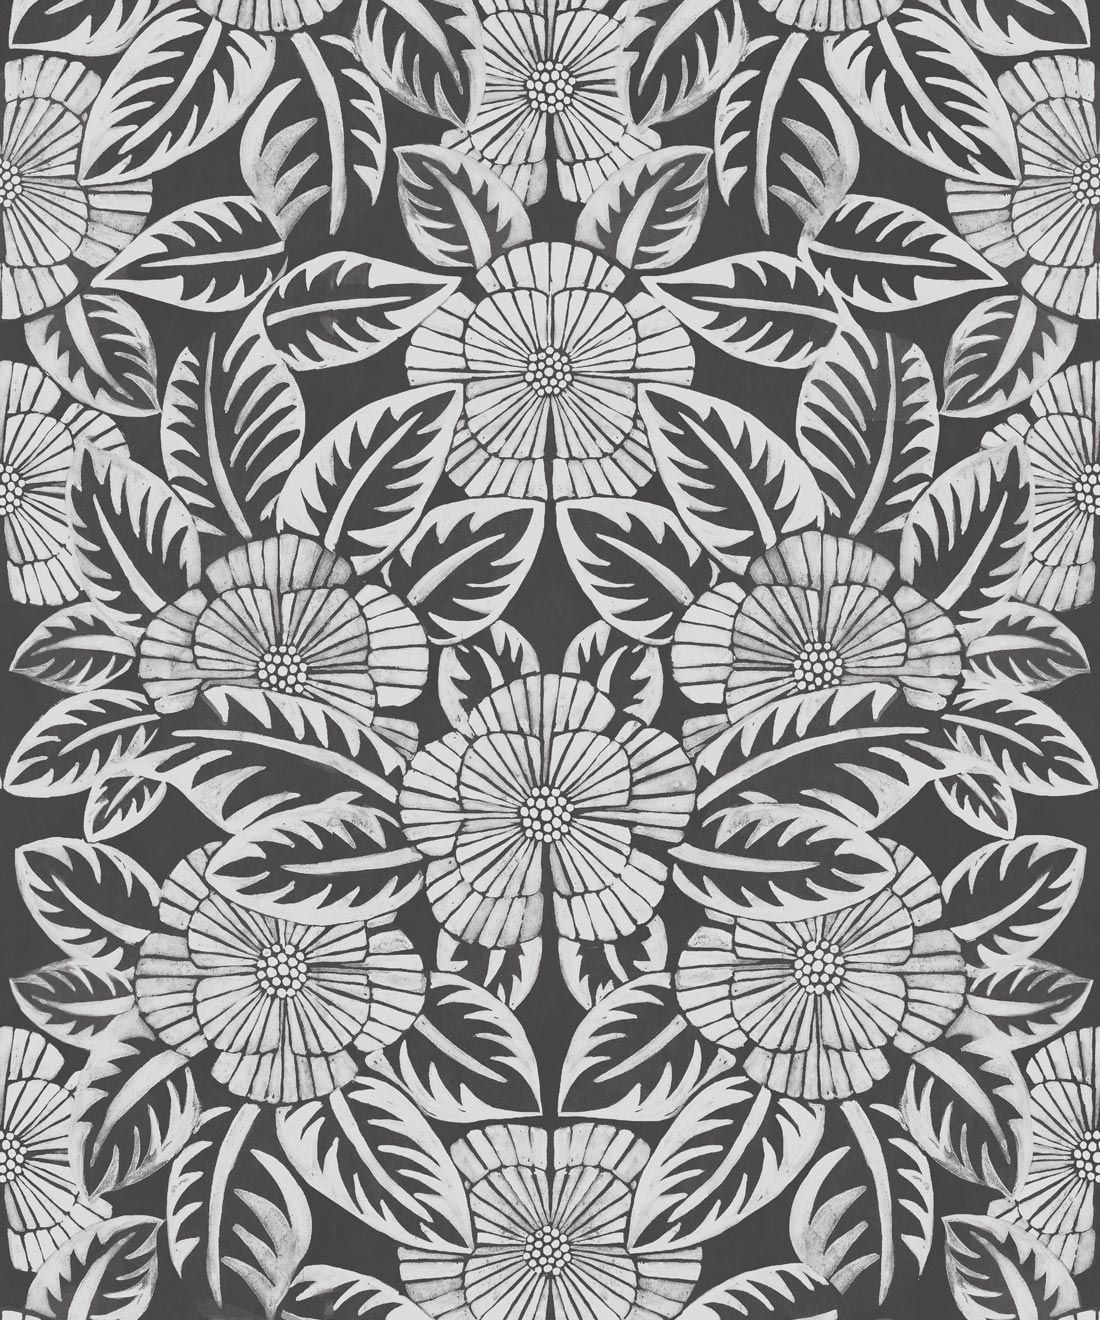 Calcutta Wallpaper • Flower and Leaf Motif Design • Ethnic Wallpaper • Charcoal Wallpaper • Swatch